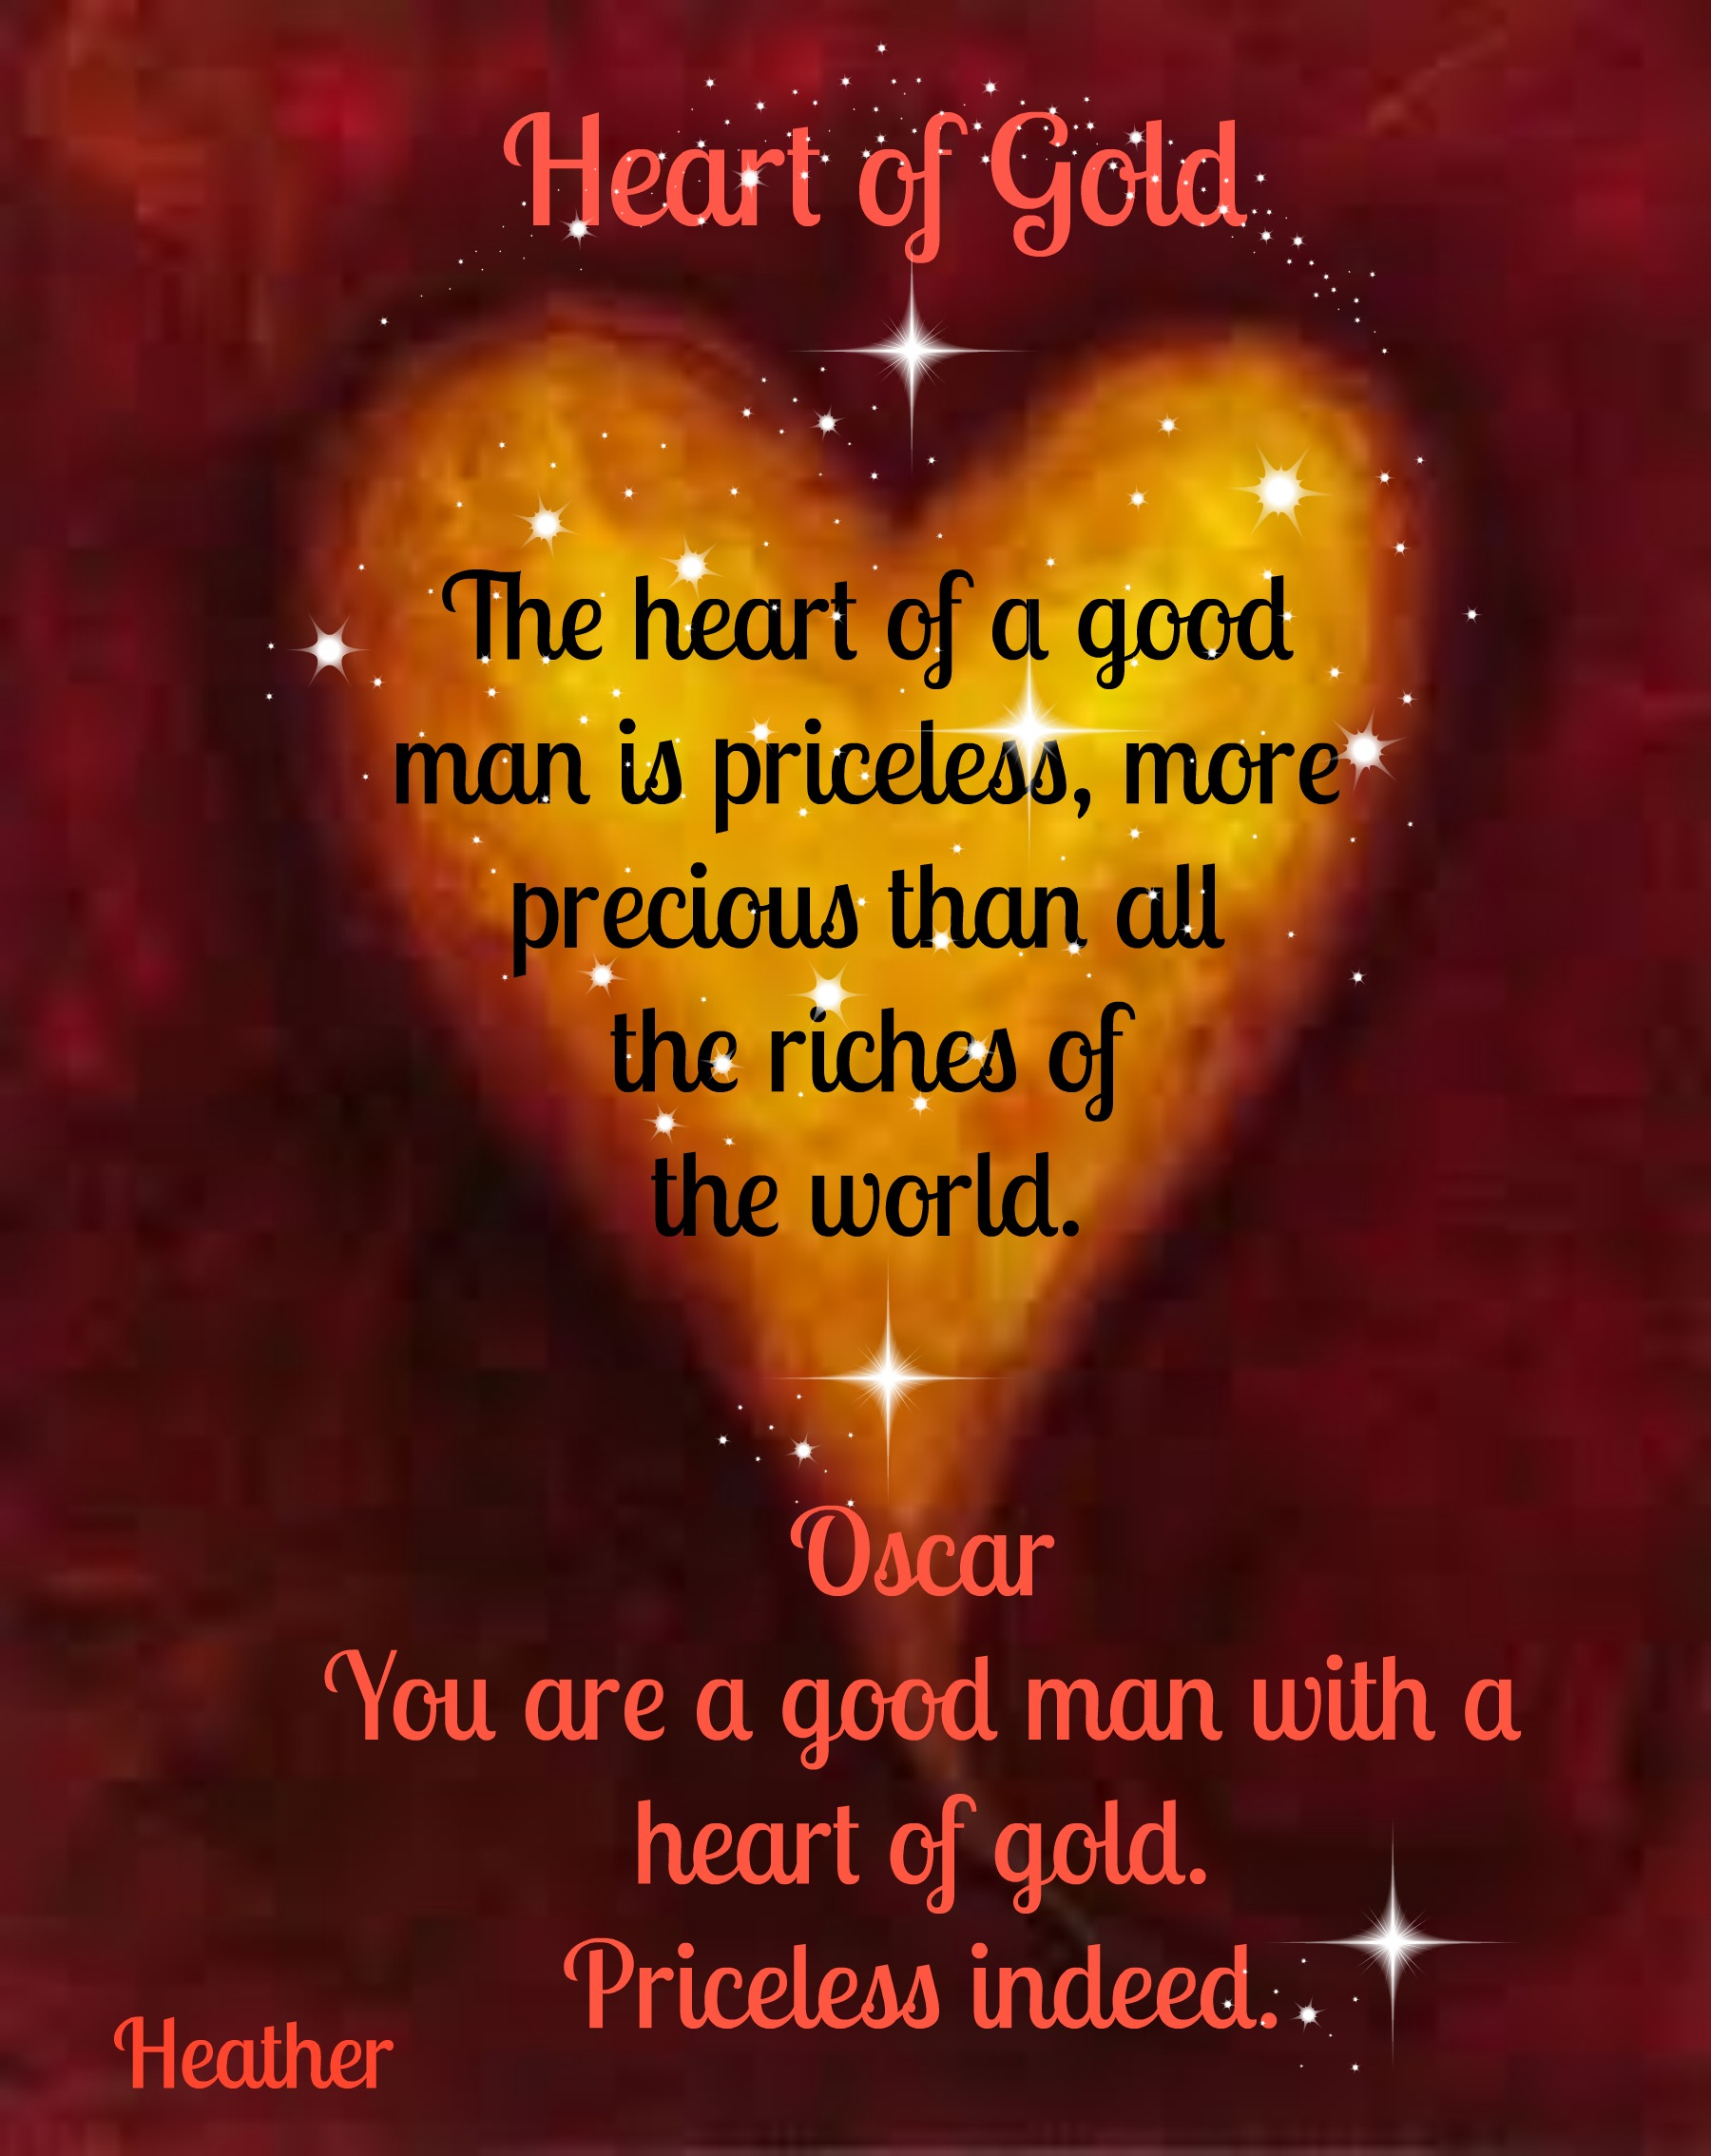 heart-of-gold-pic.jpg